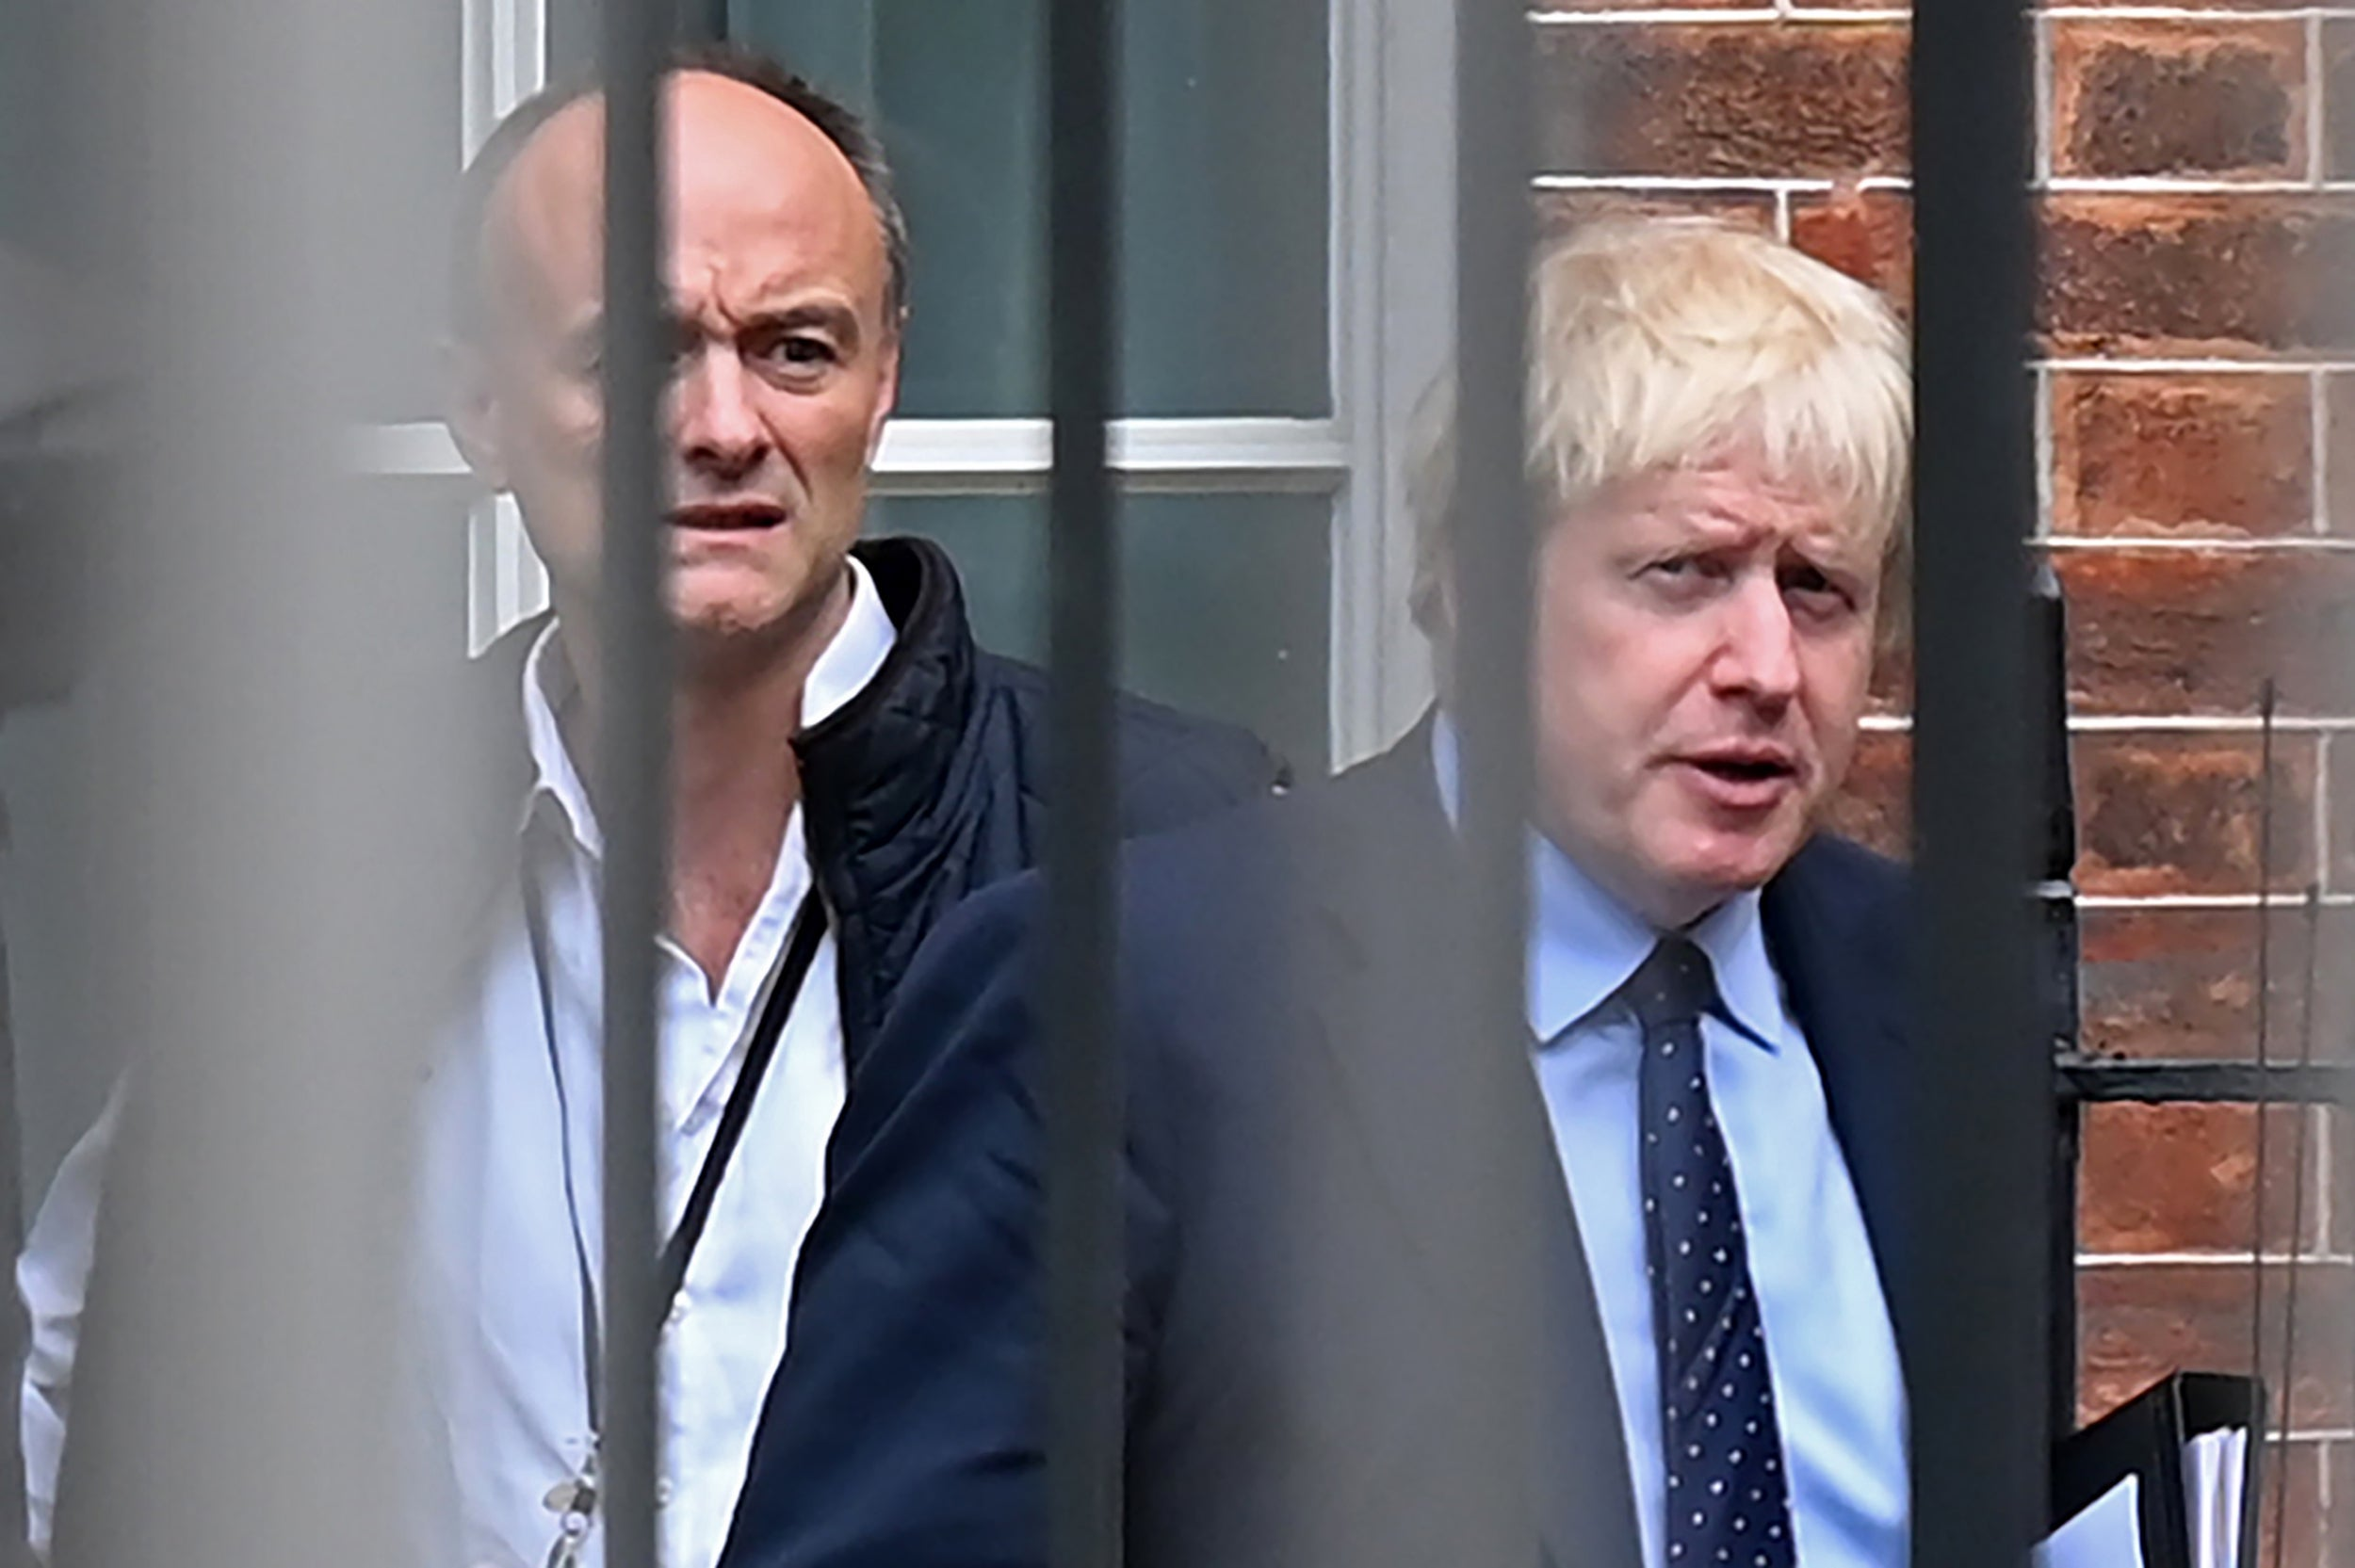 Think we've experienced the worst of Boris Johnson and Cummings? We haven't seen anything yet